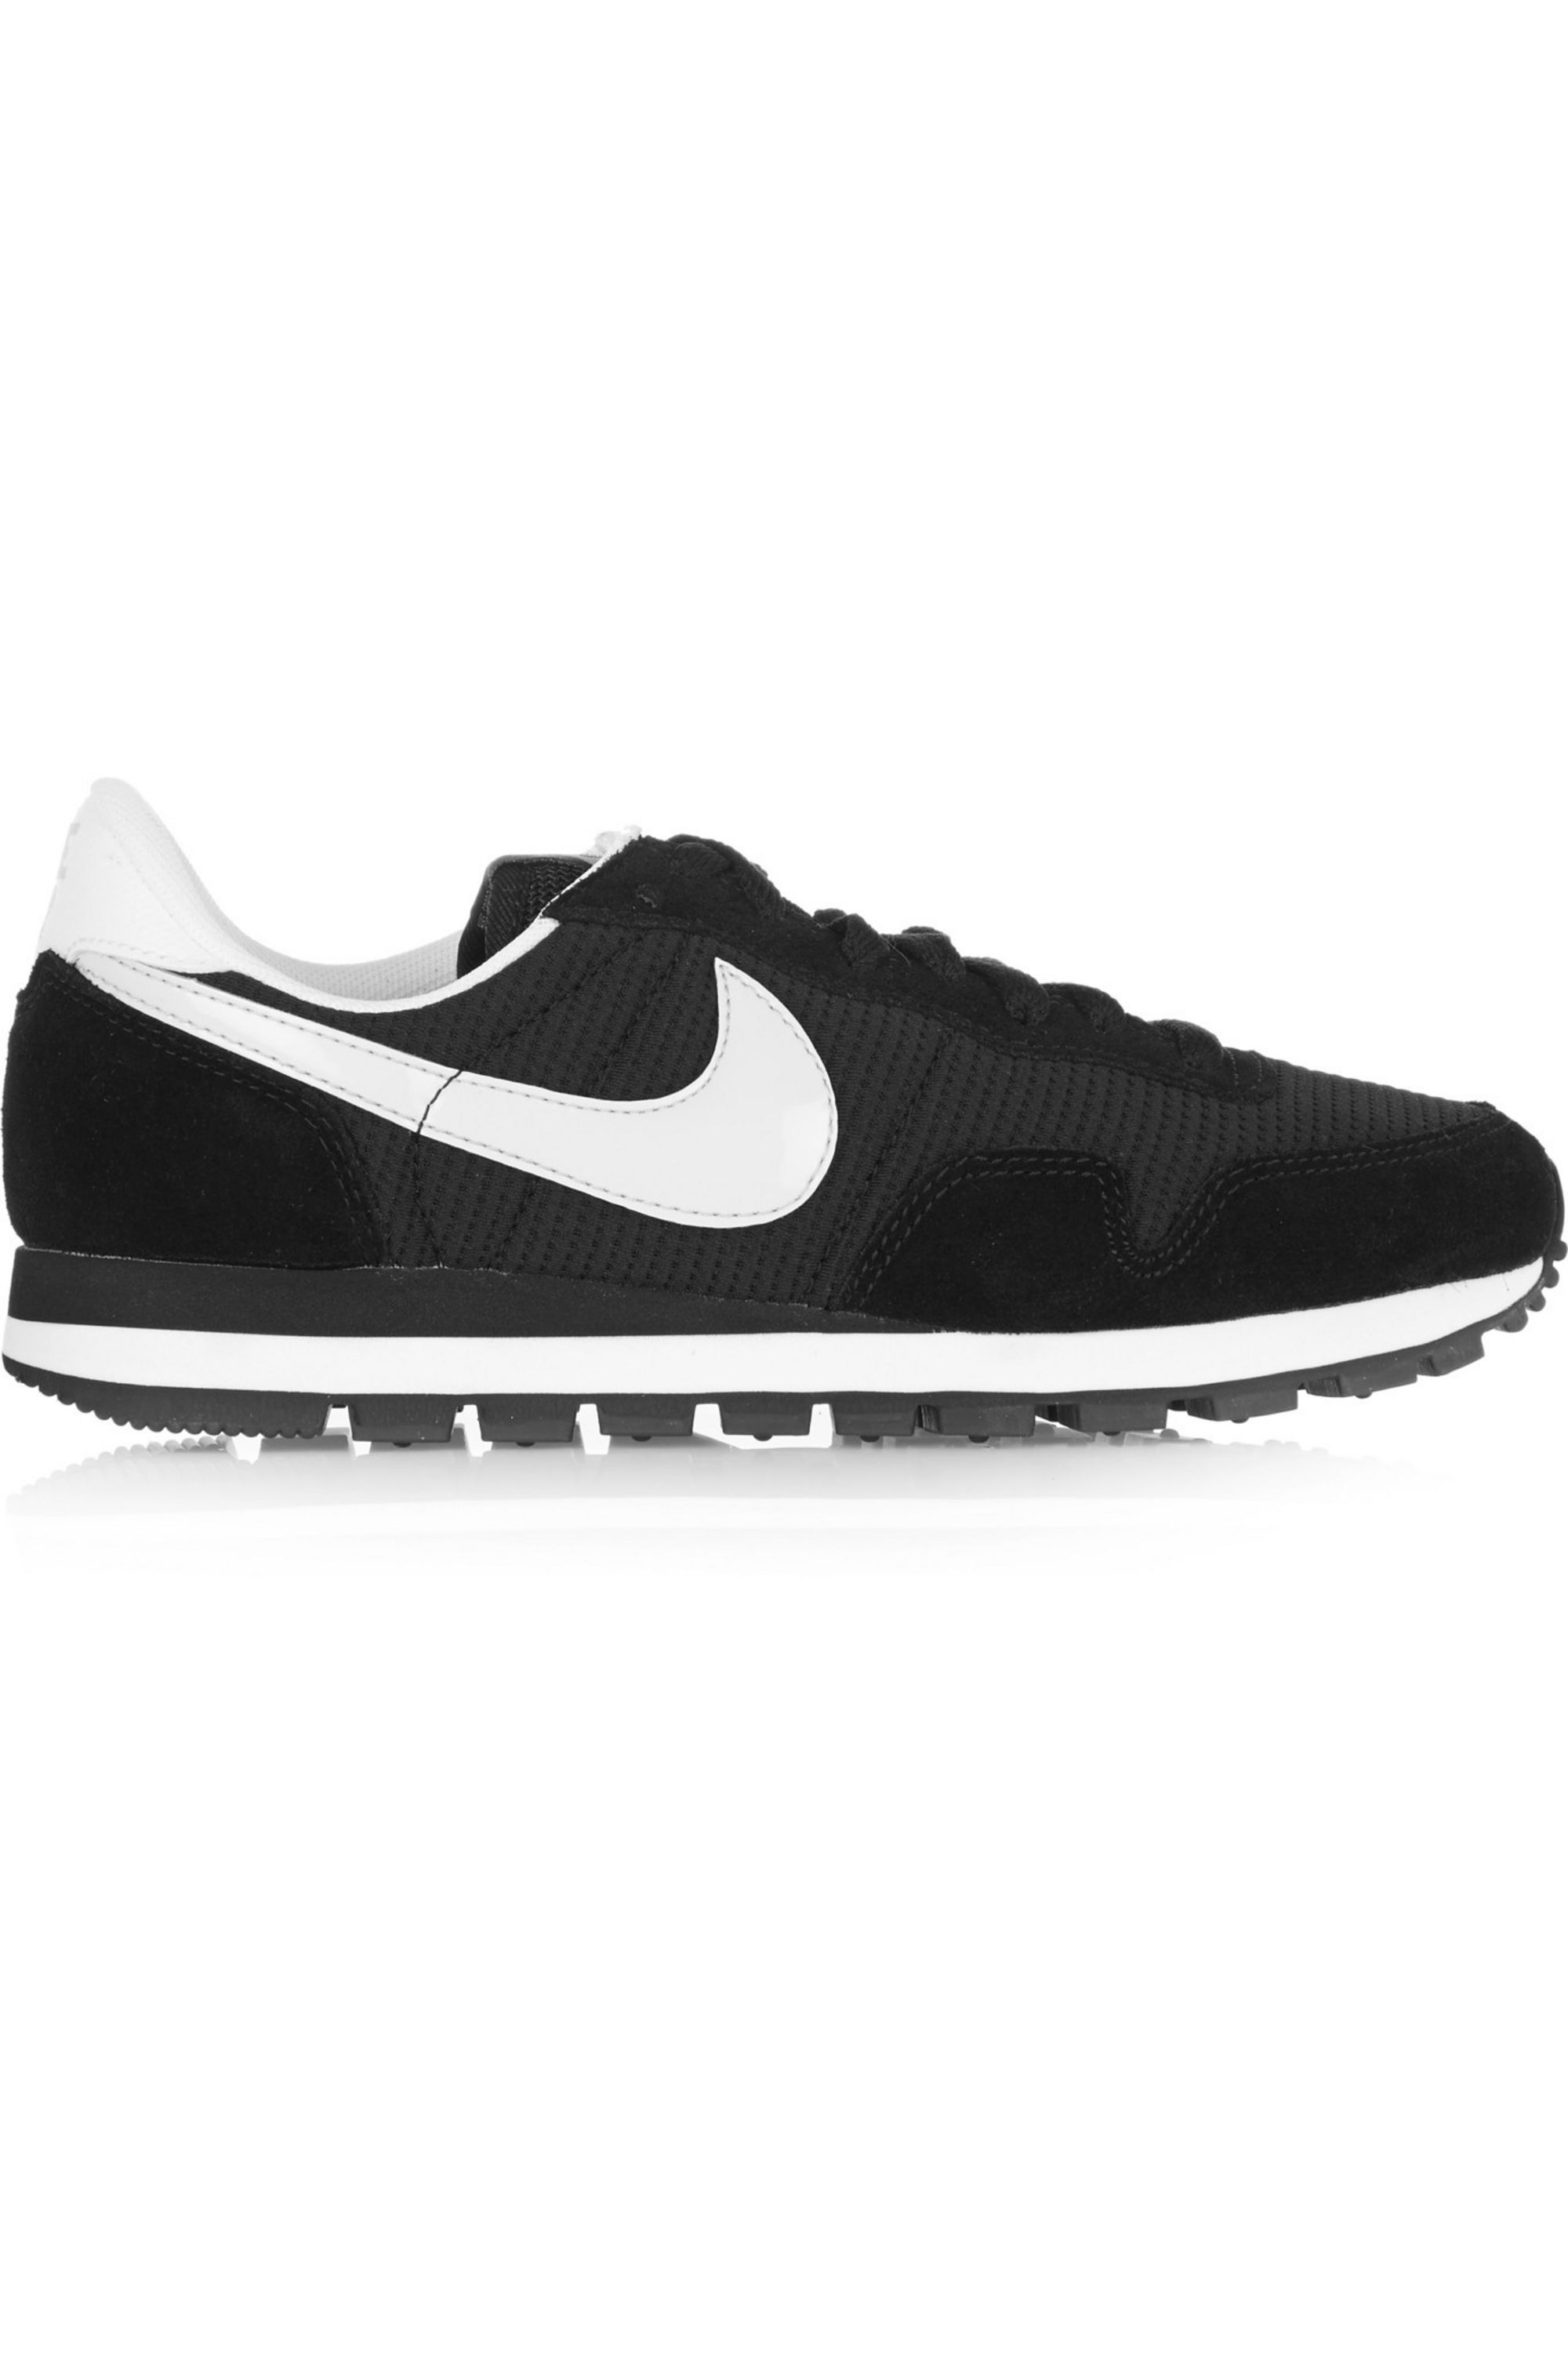 Black Air Pegasus 83 suede, leather and